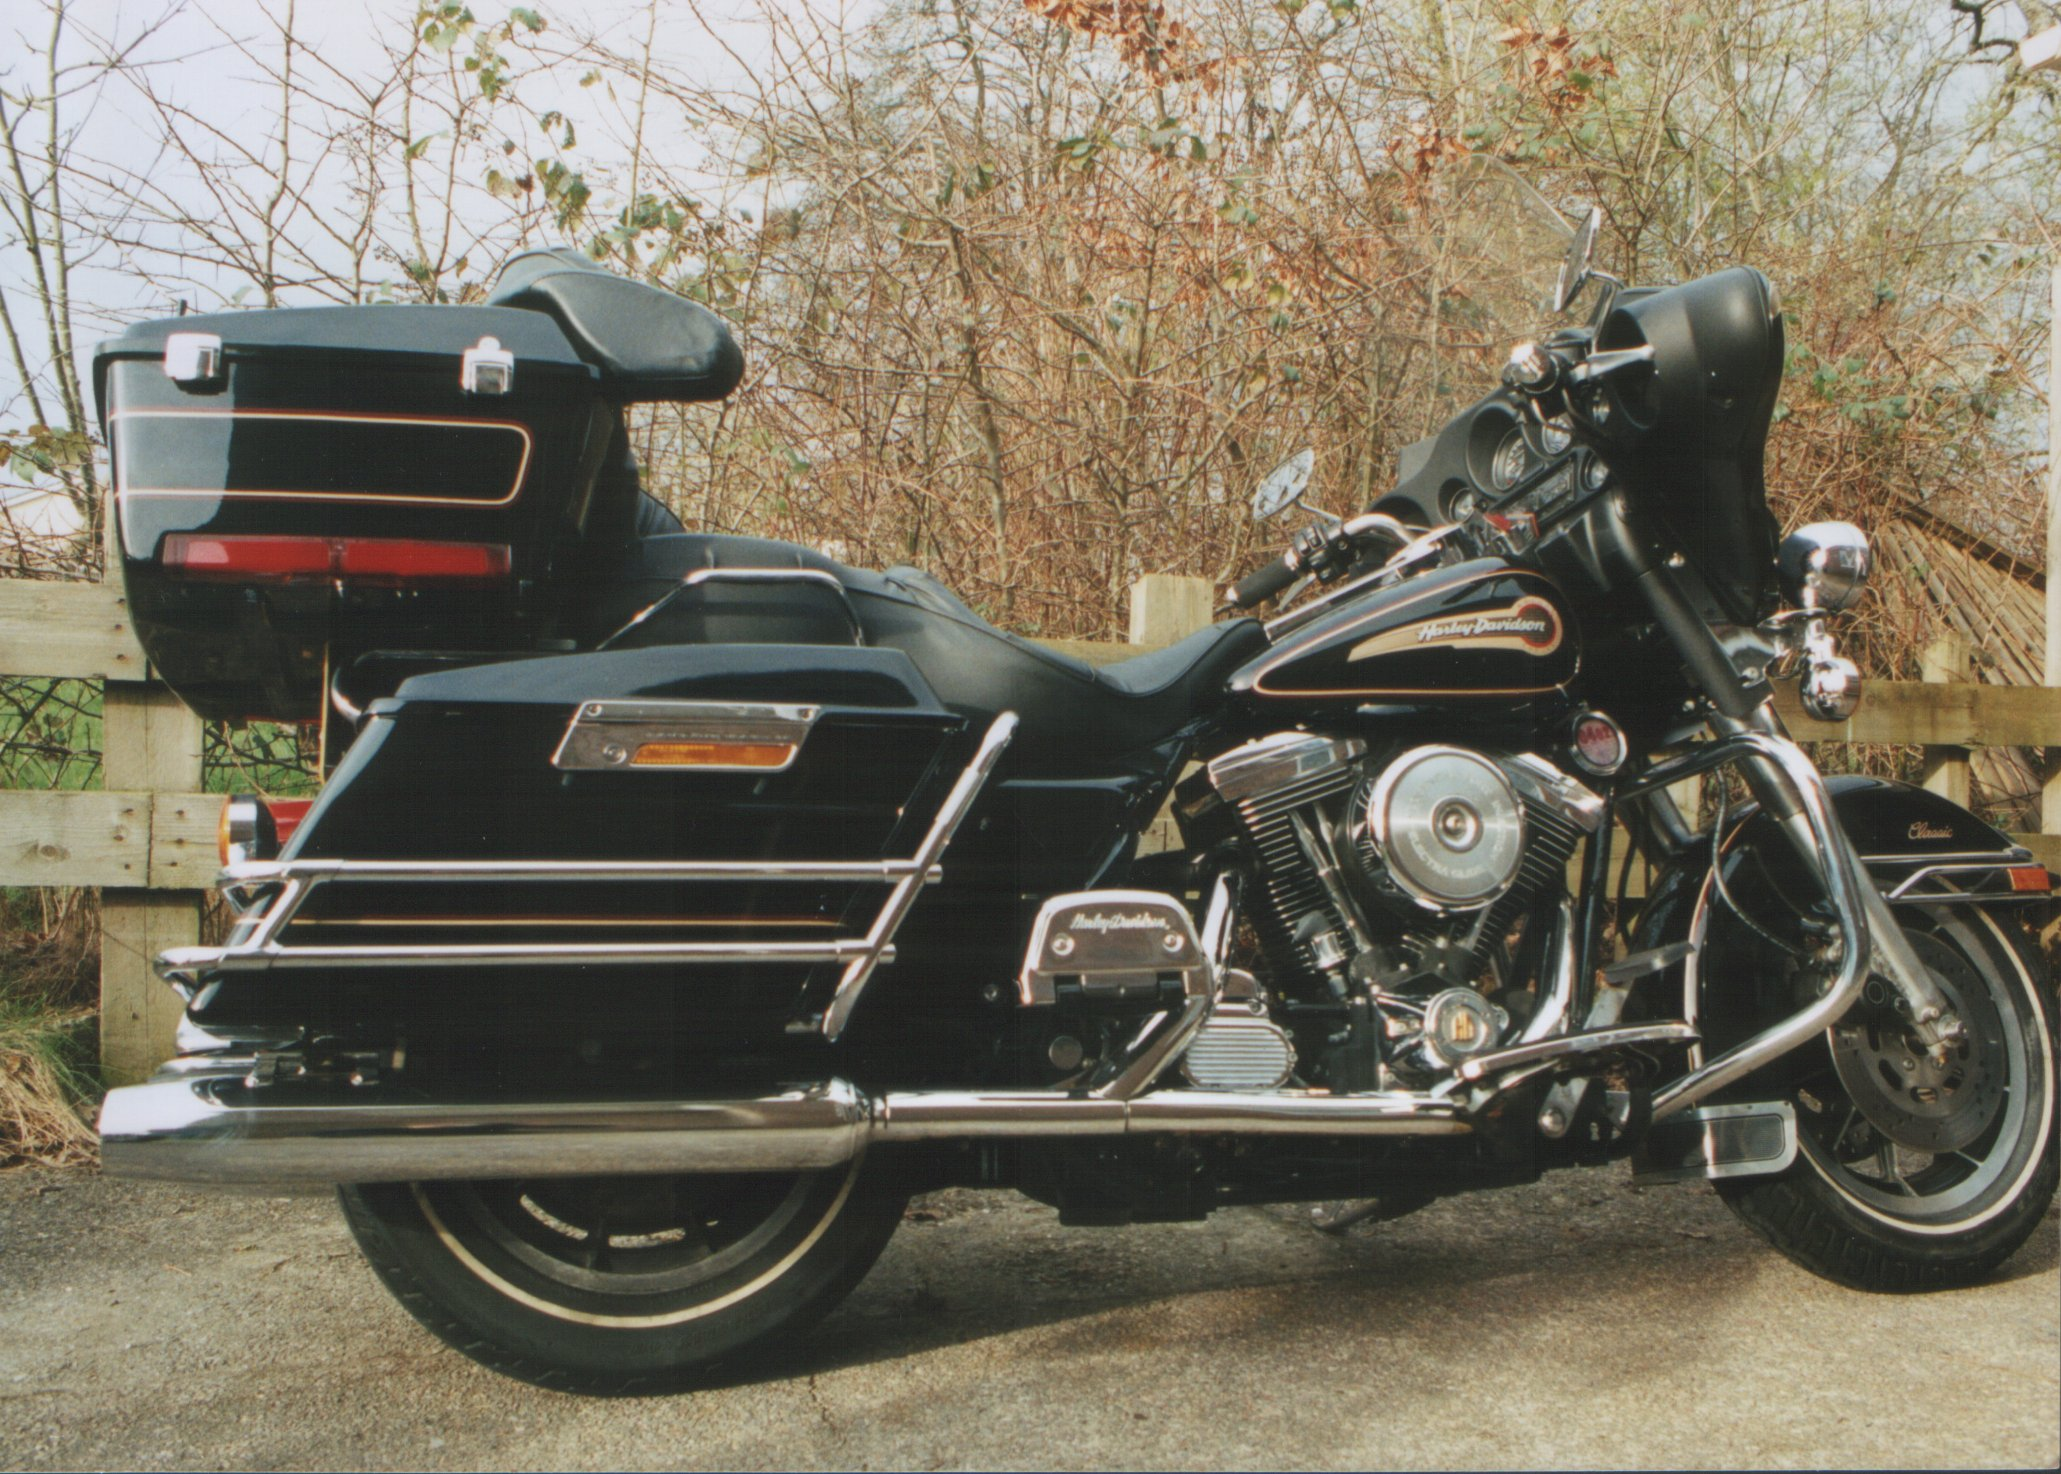 Harley-Davidson FLHTC 1340 Electra Glide Classic 1984 #3